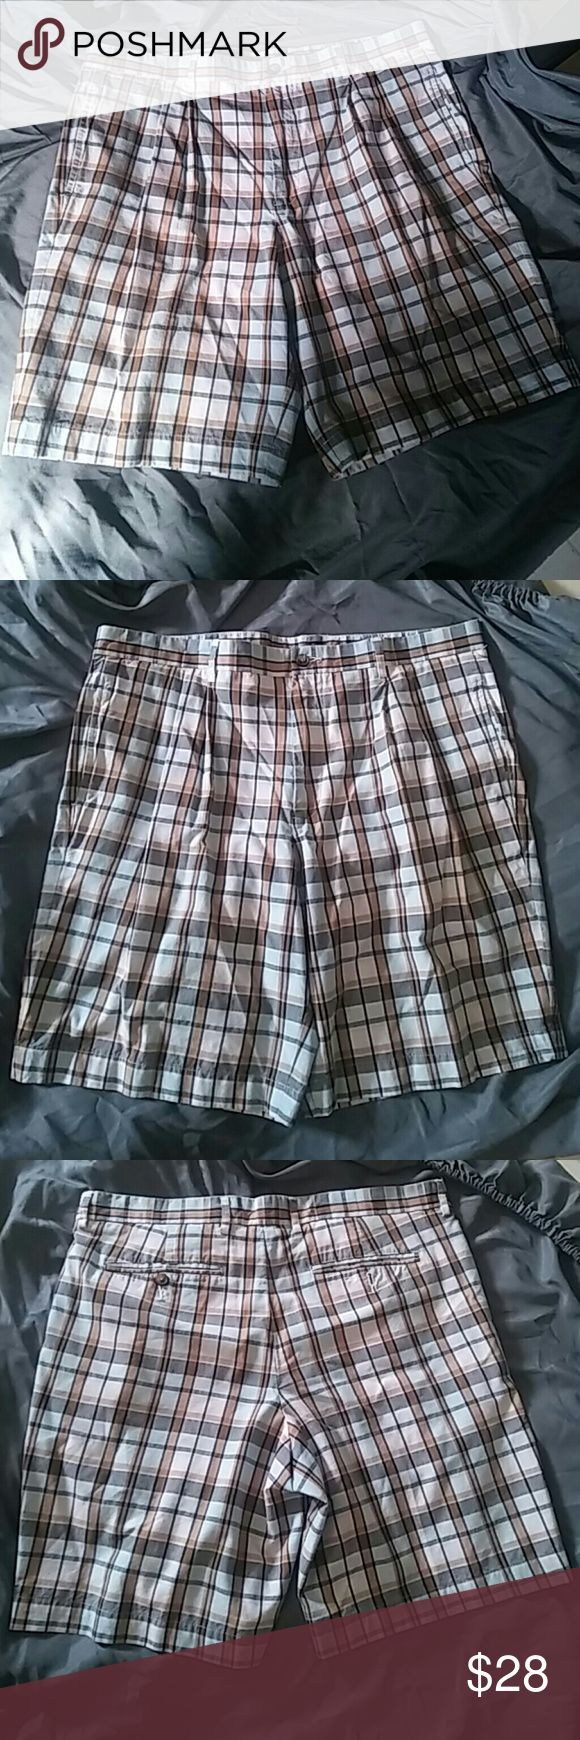 """Nwots Greg Norman size 36 mens shorts checkered Nwots Greg Norman size 36 mens shorts checkered , multi colored checkered, excellent condition. Measurements inseam 8"""" . pockets in the front and back message for questions and dont forget to follow me on instagram@alexdee040501. Tnx greg norman Shorts"""